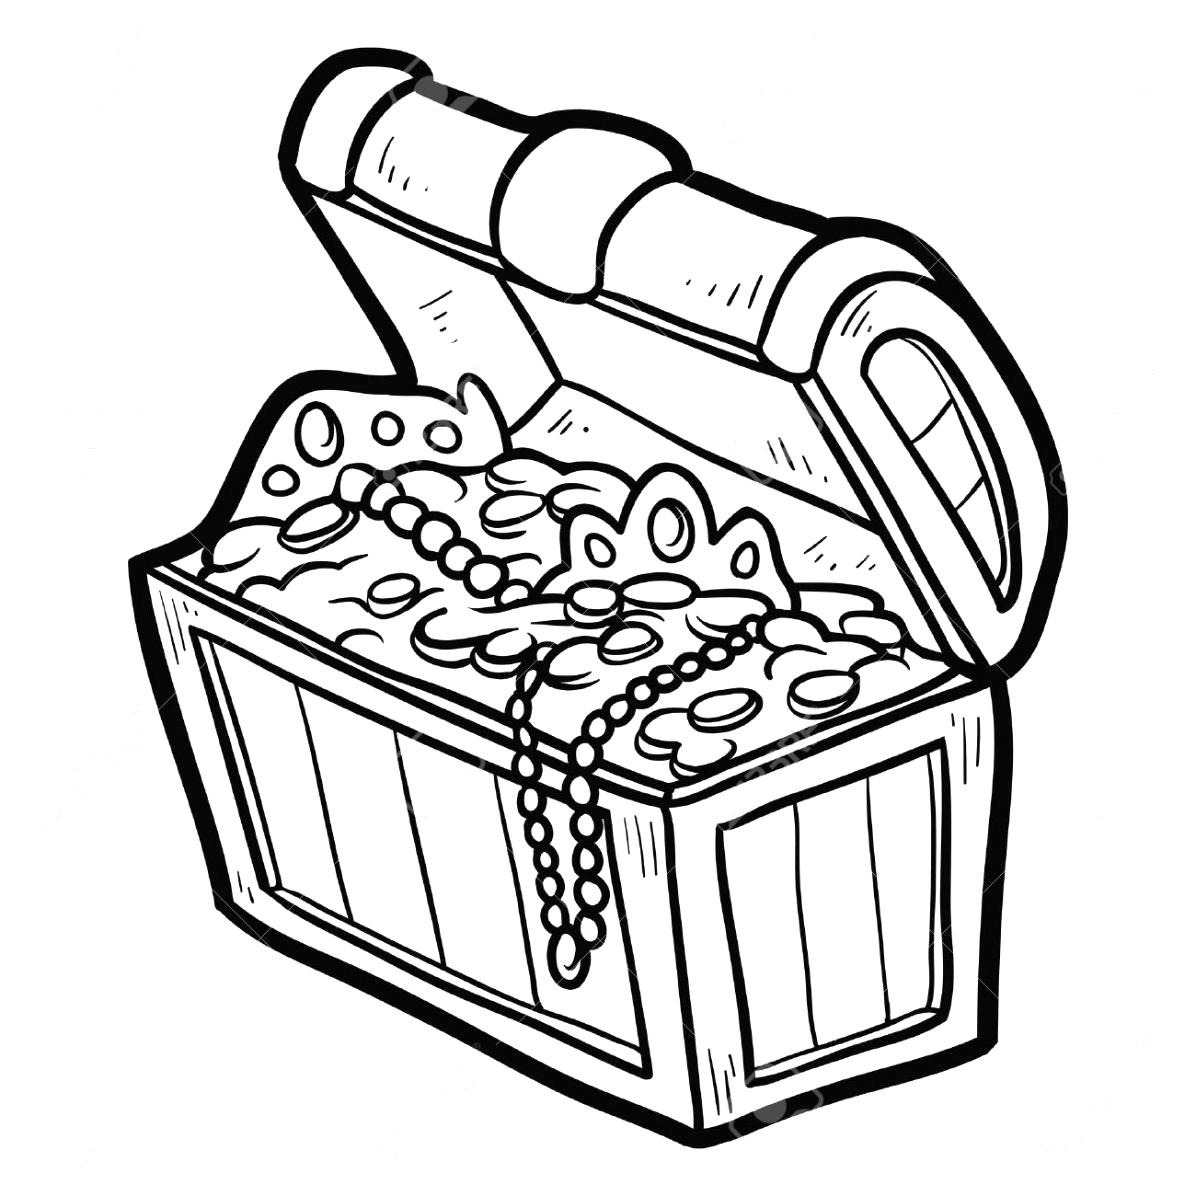 Treasure chest clipart black and white clipart best for Treasure coloring pages